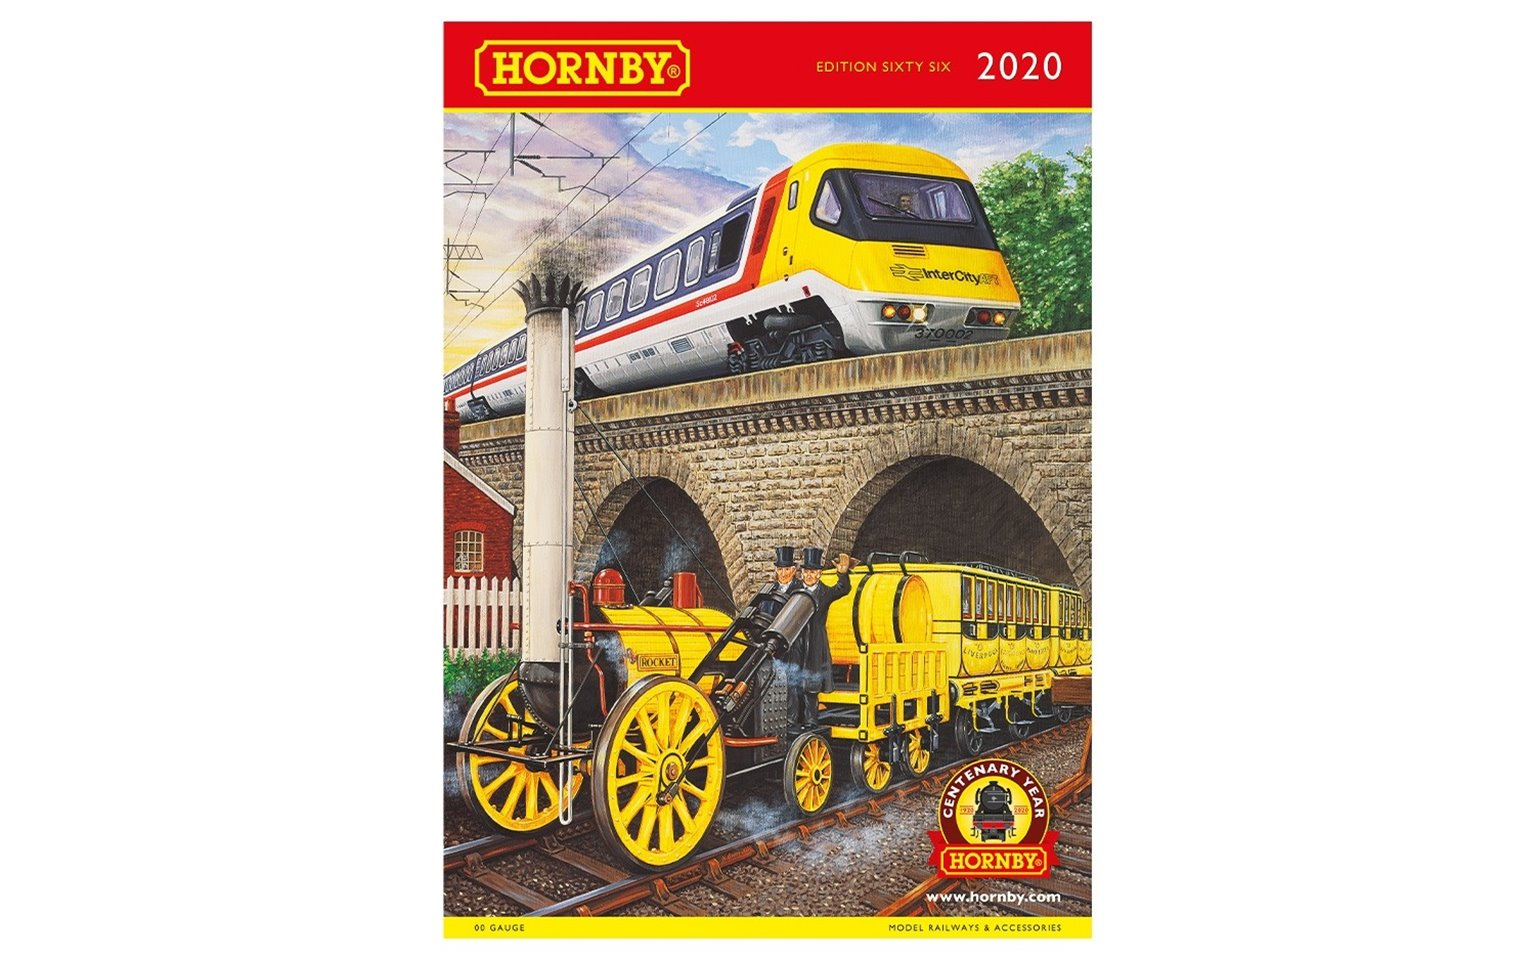 Hornby 2020 66th Edition Catalogue - 100th Anniversary Centenary Edition